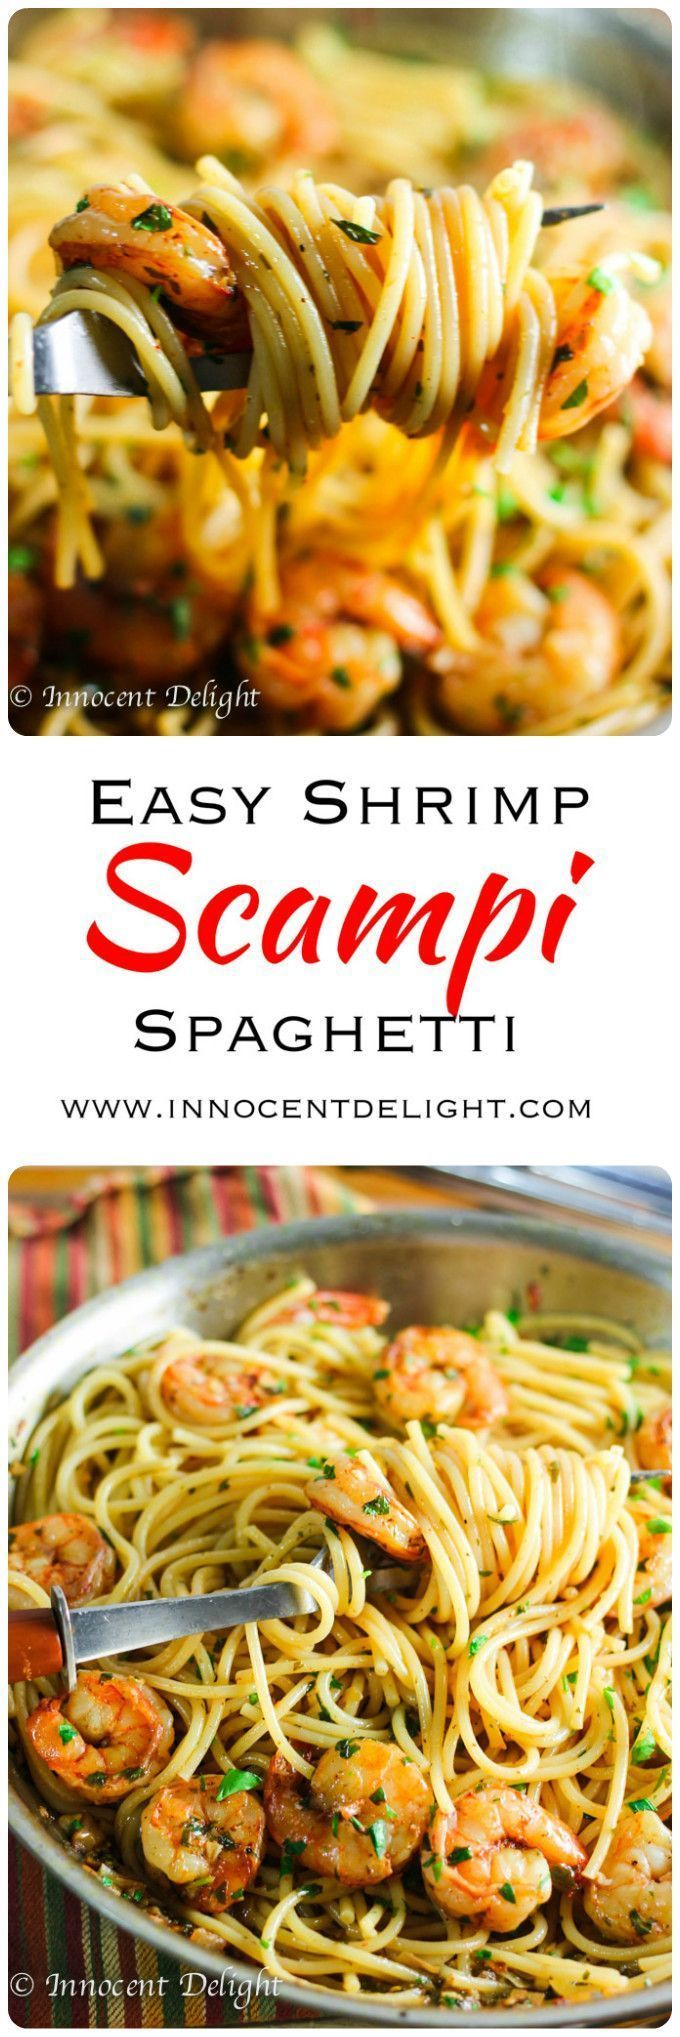 Shrimp Scampi Spaghetti Easy Shrimp Scampi Spaghetti. Perfect and super delicious pasta with shrimp smothered in garlic, butter and parsley for a quick weeknight dinner; ready in just 20 minutes.Easy Shrimp Scampi Spaghetti. Perfect and super delicious pasta with shrimp smothered in garlic, butter and parsley for a quick weeknight dinner; ready in just 20...